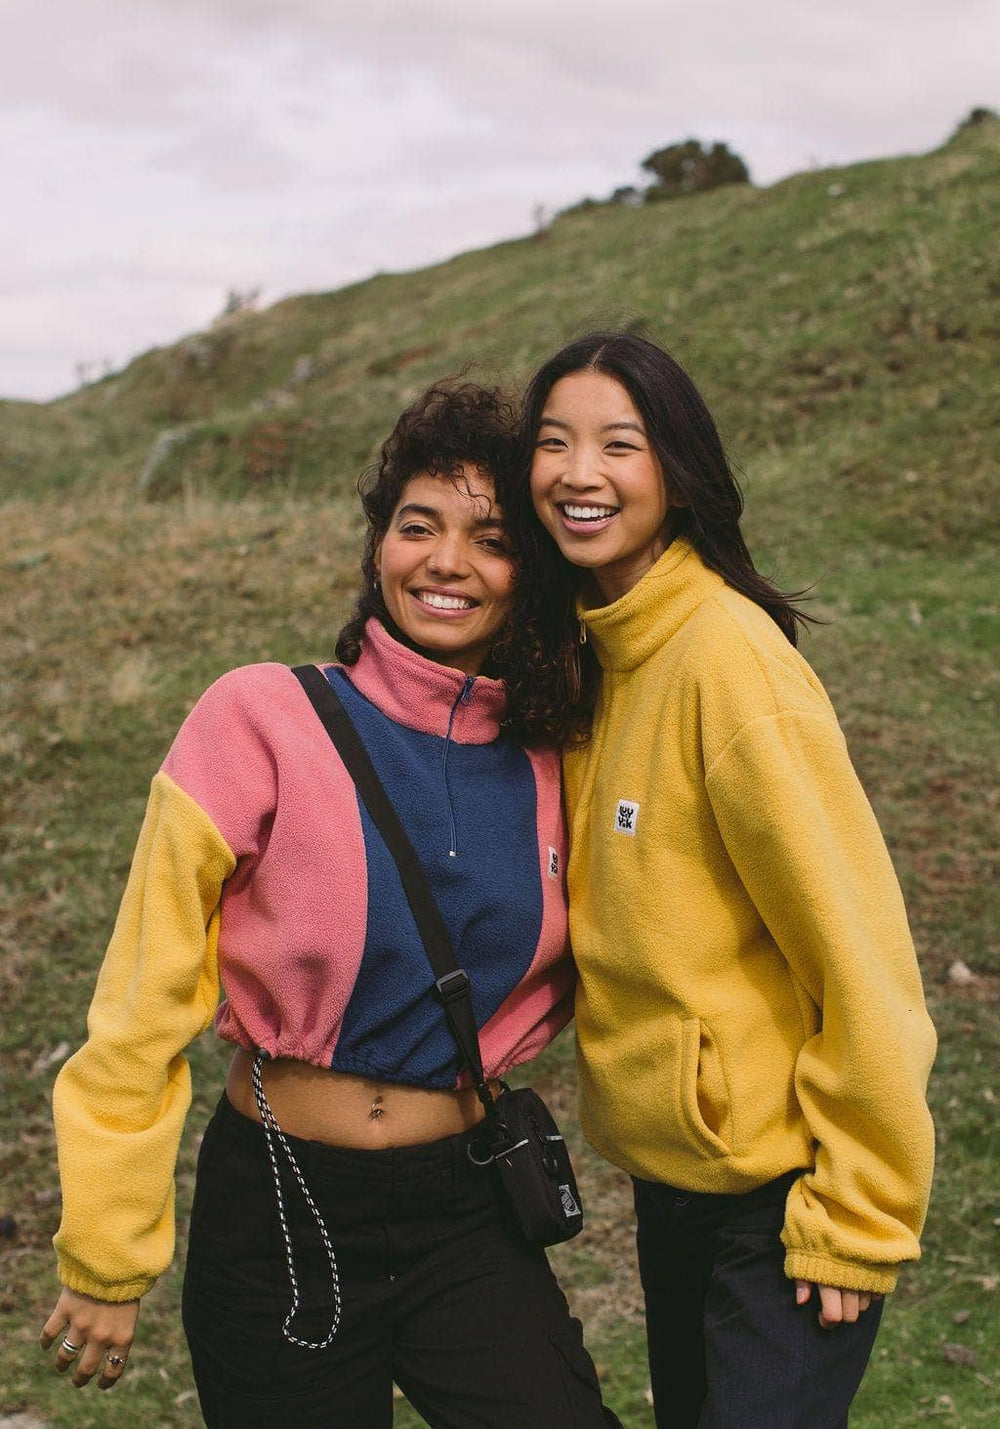 Lucy & Yak Tops 'Blake' Cropped Fleece in Pink, Navy & Mustard